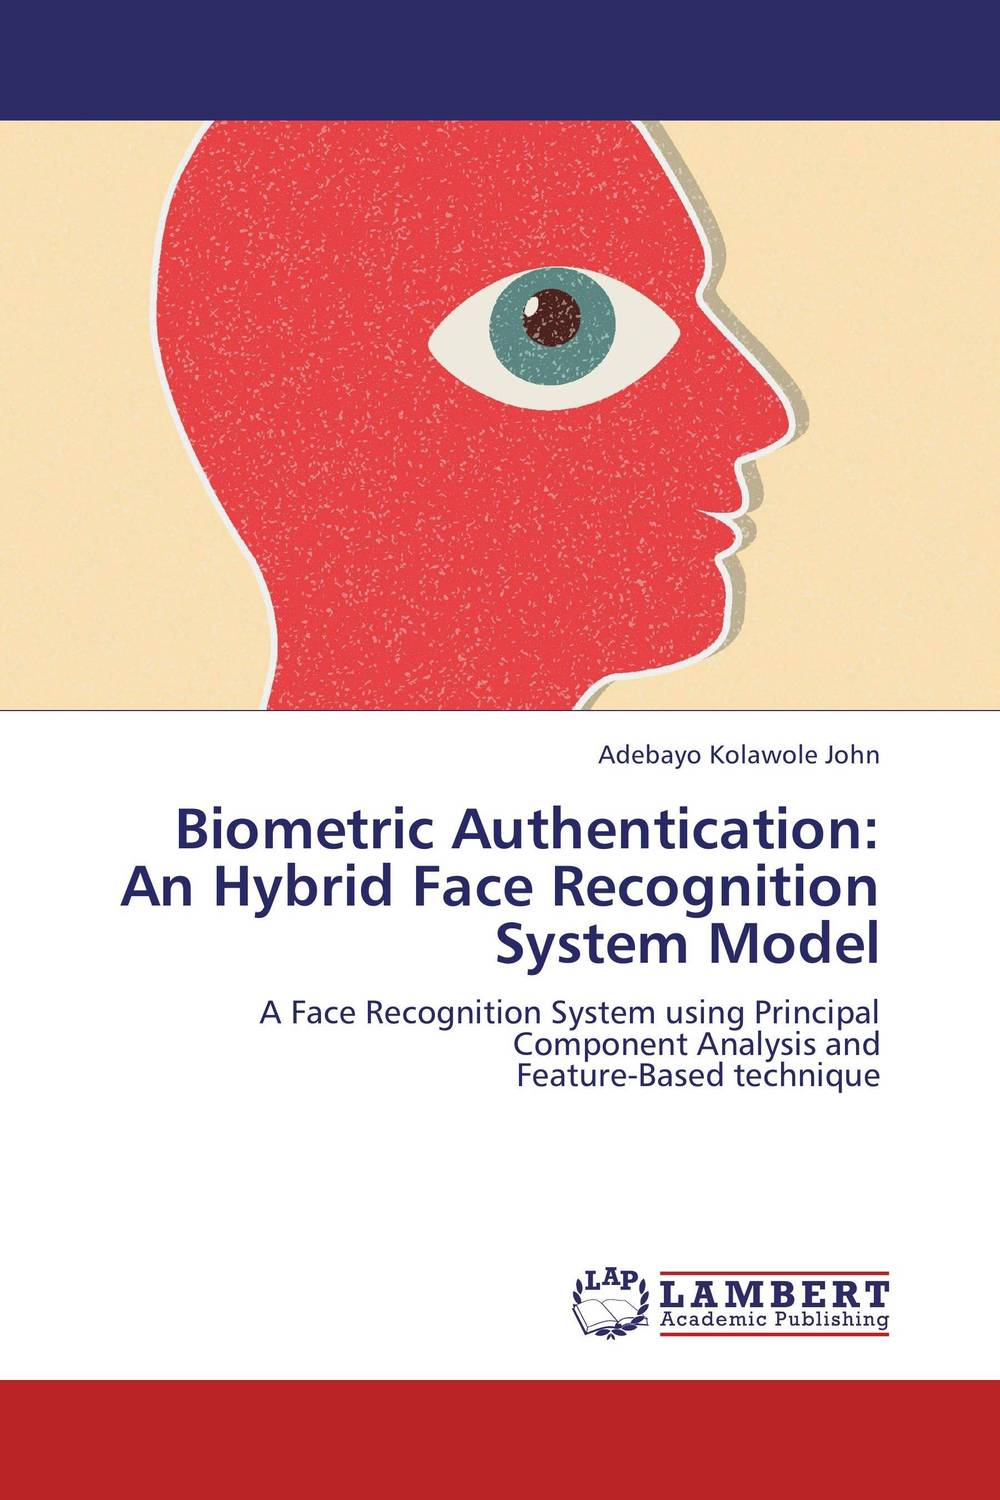 Biometric Authentication: An Hybrid Face Recognition System Model clustering information entities based on statistical methods